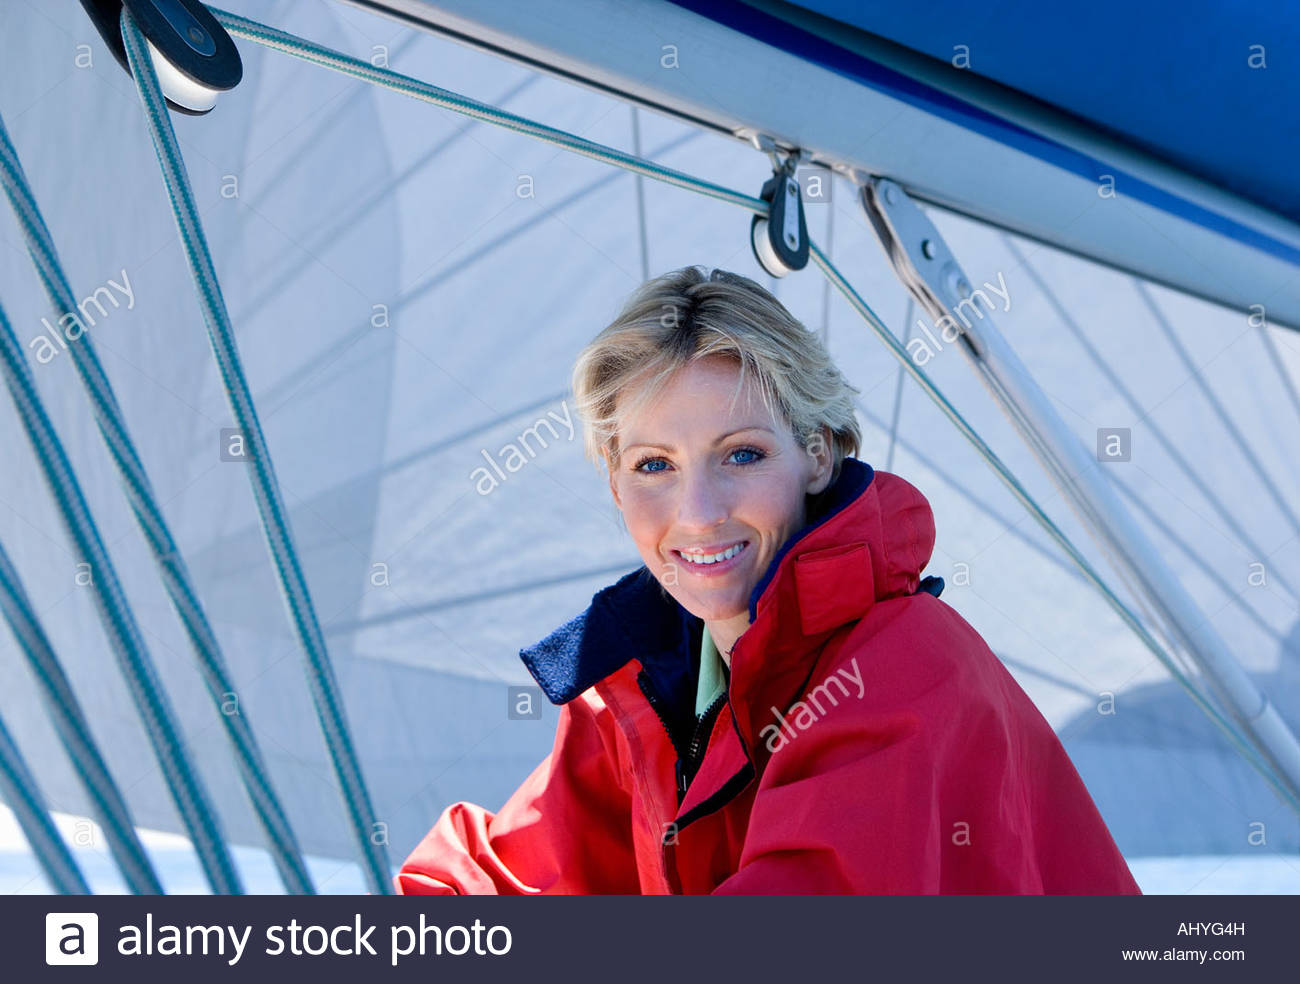 Woman in red jacket sitting on deck of sailing boat below sail, smiling, side view, portrait - Stock Image